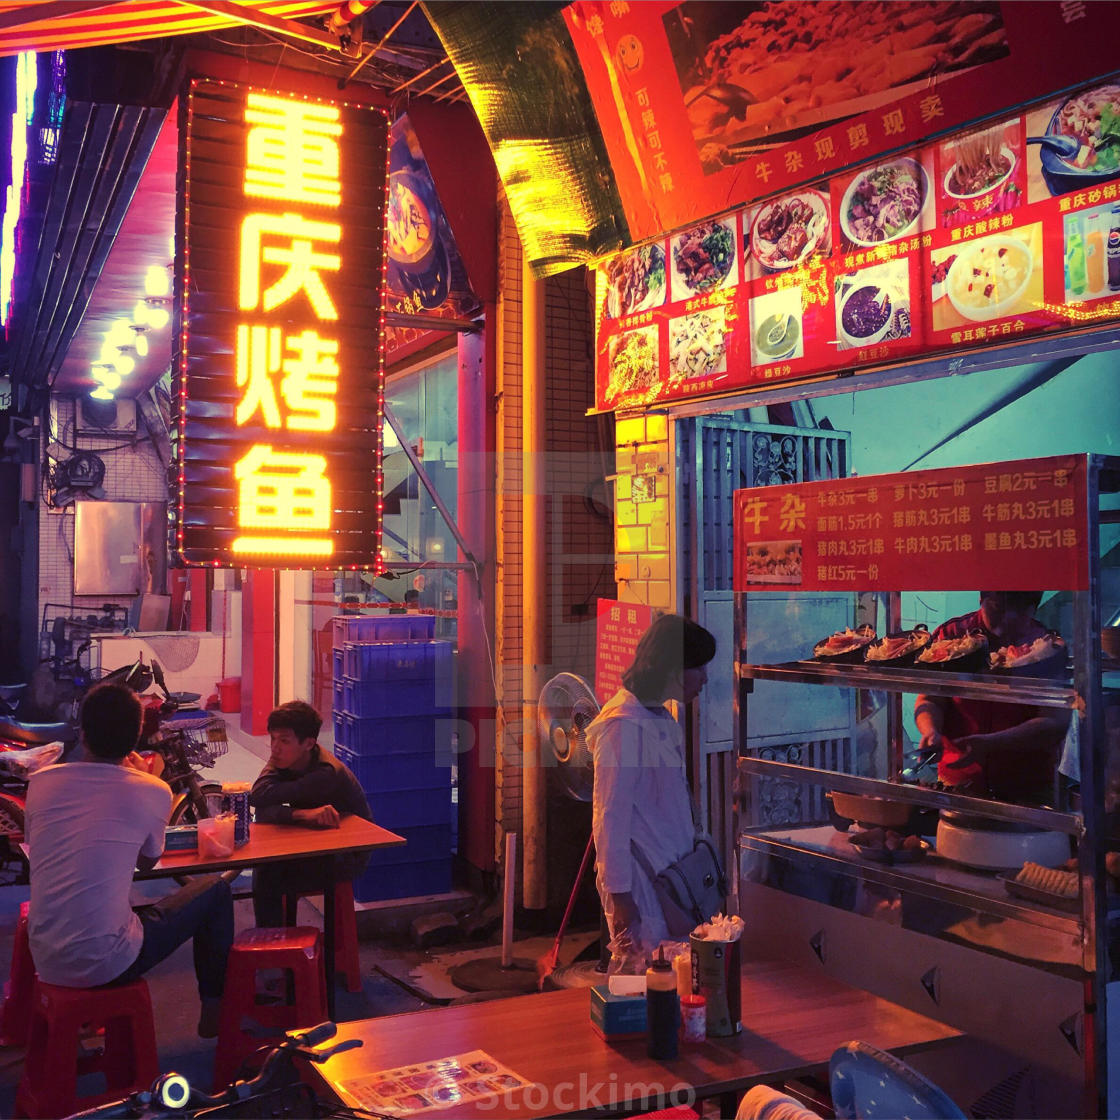 """Street restaurant in Guangzhou on a restaurant, China - Chongqing roasted fish."" stock image"